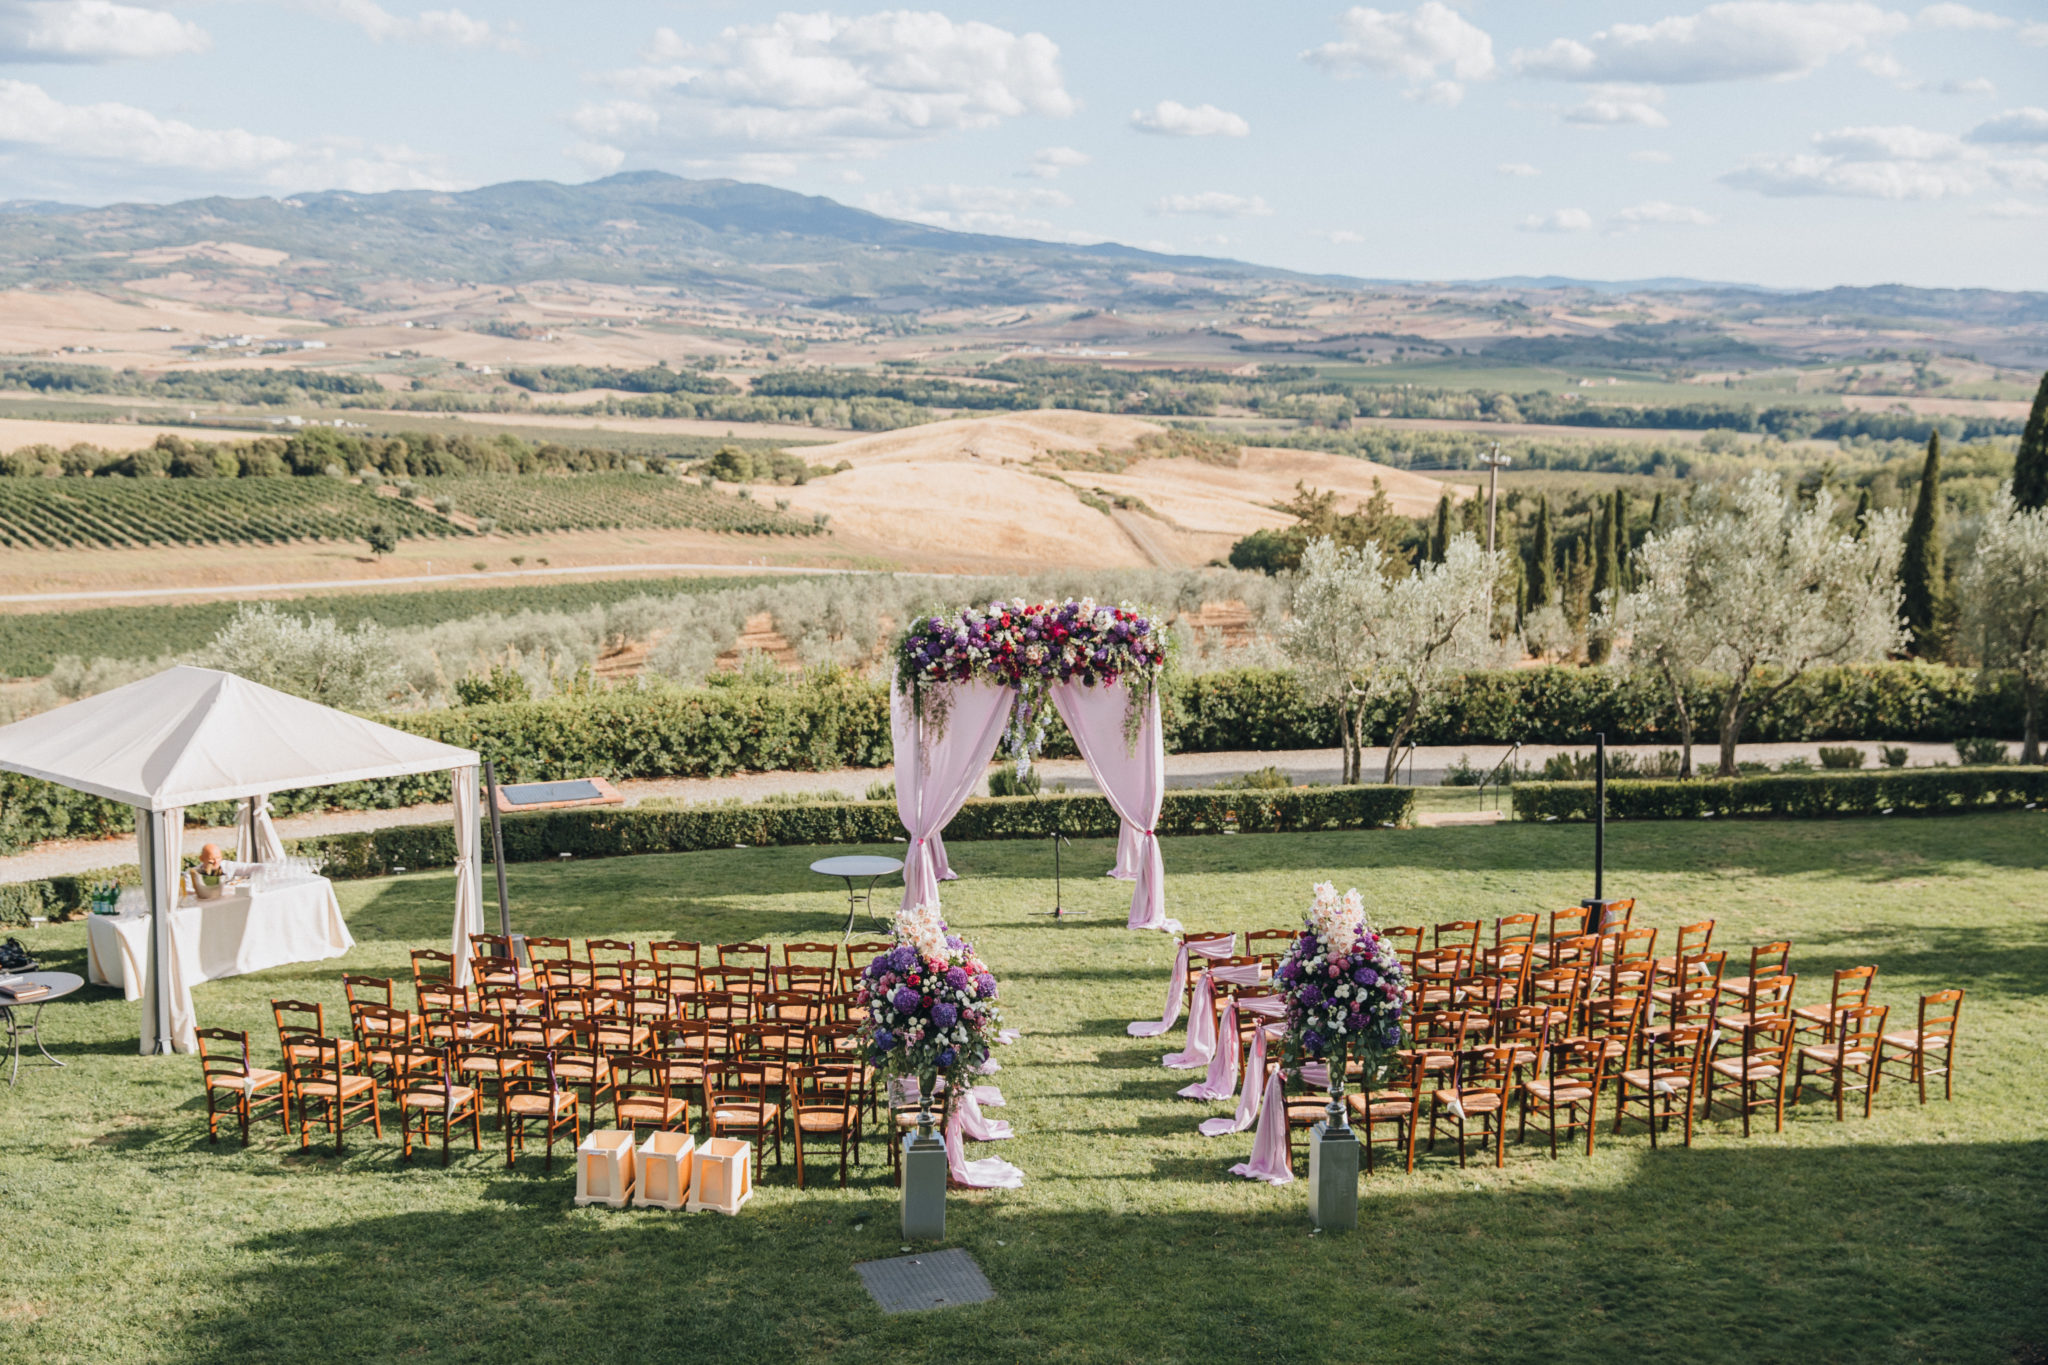 beautiful outdoor wedding ceremony set up wedding ceremony area on the hillside in Tuscany